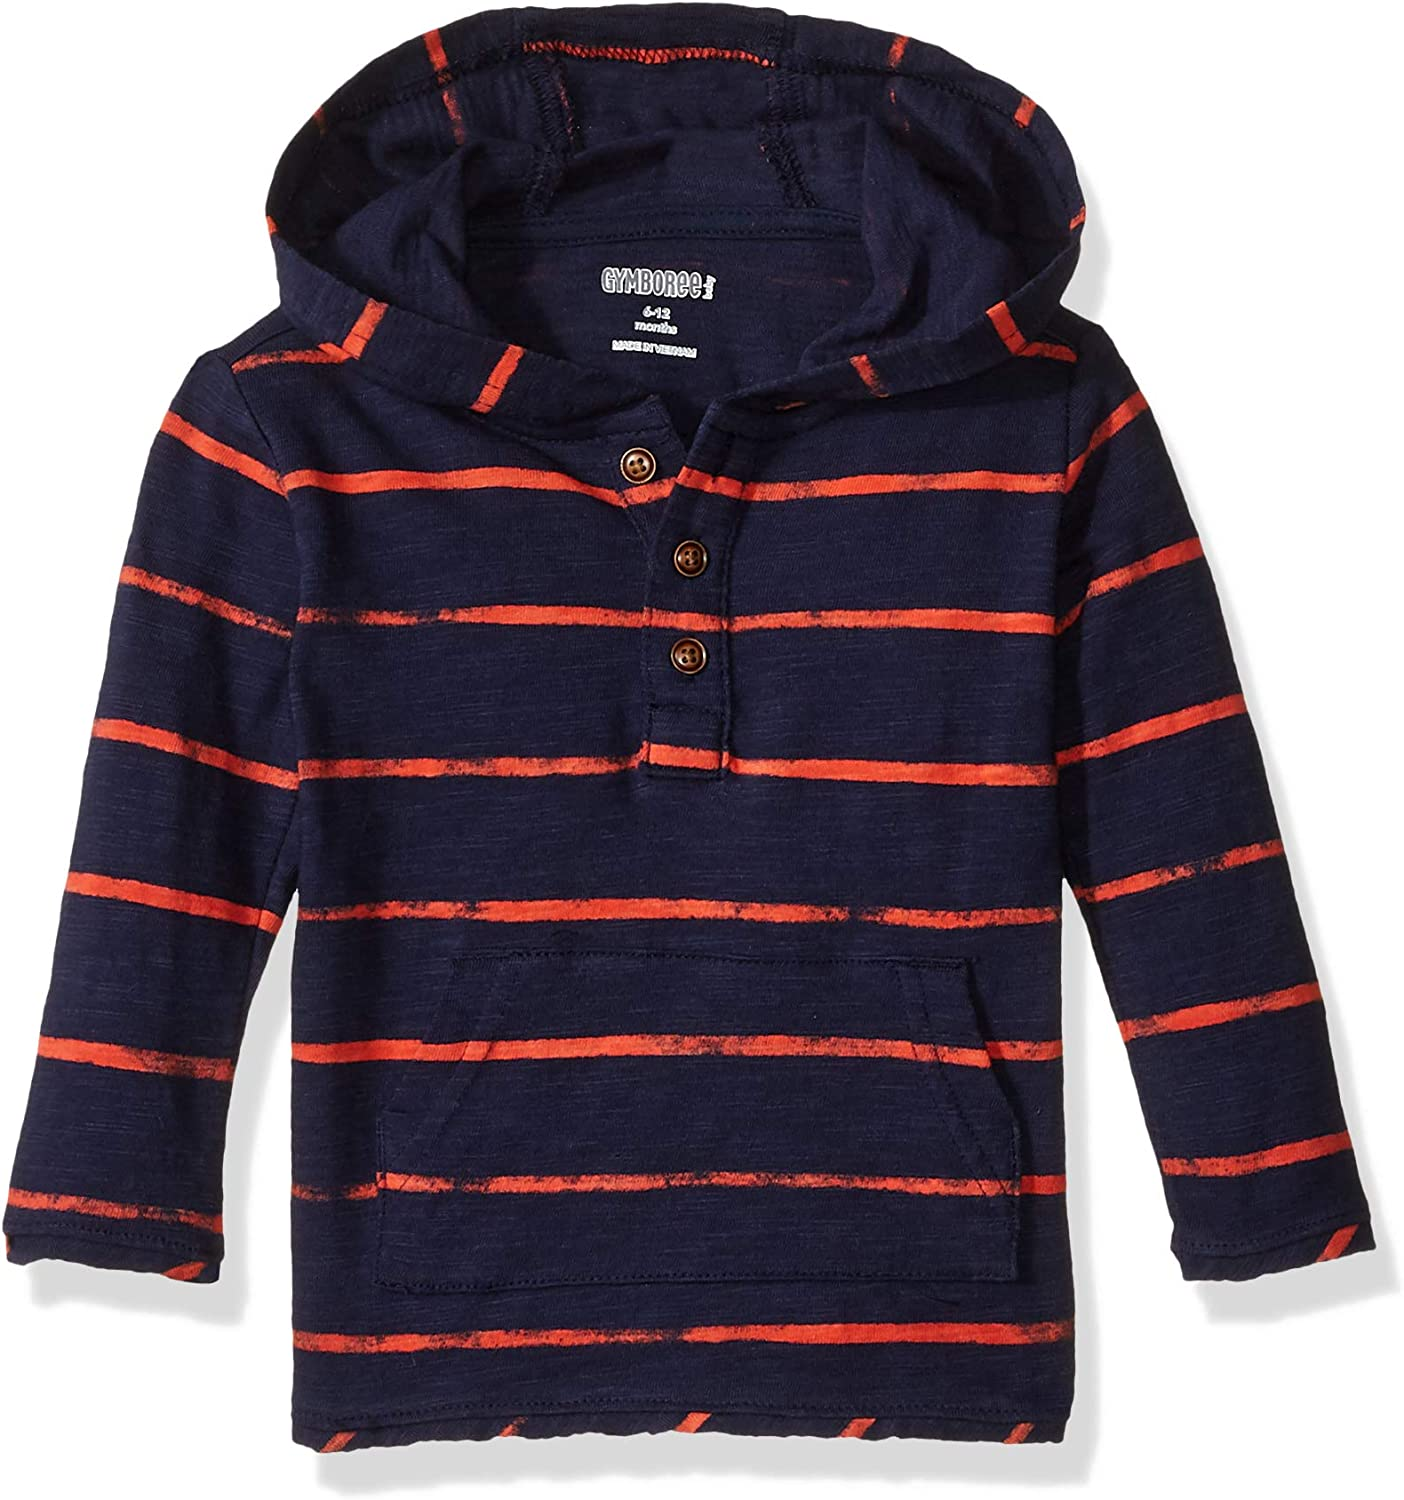 Gymboree Baby Boys Long Sleeve Casual Knit Top